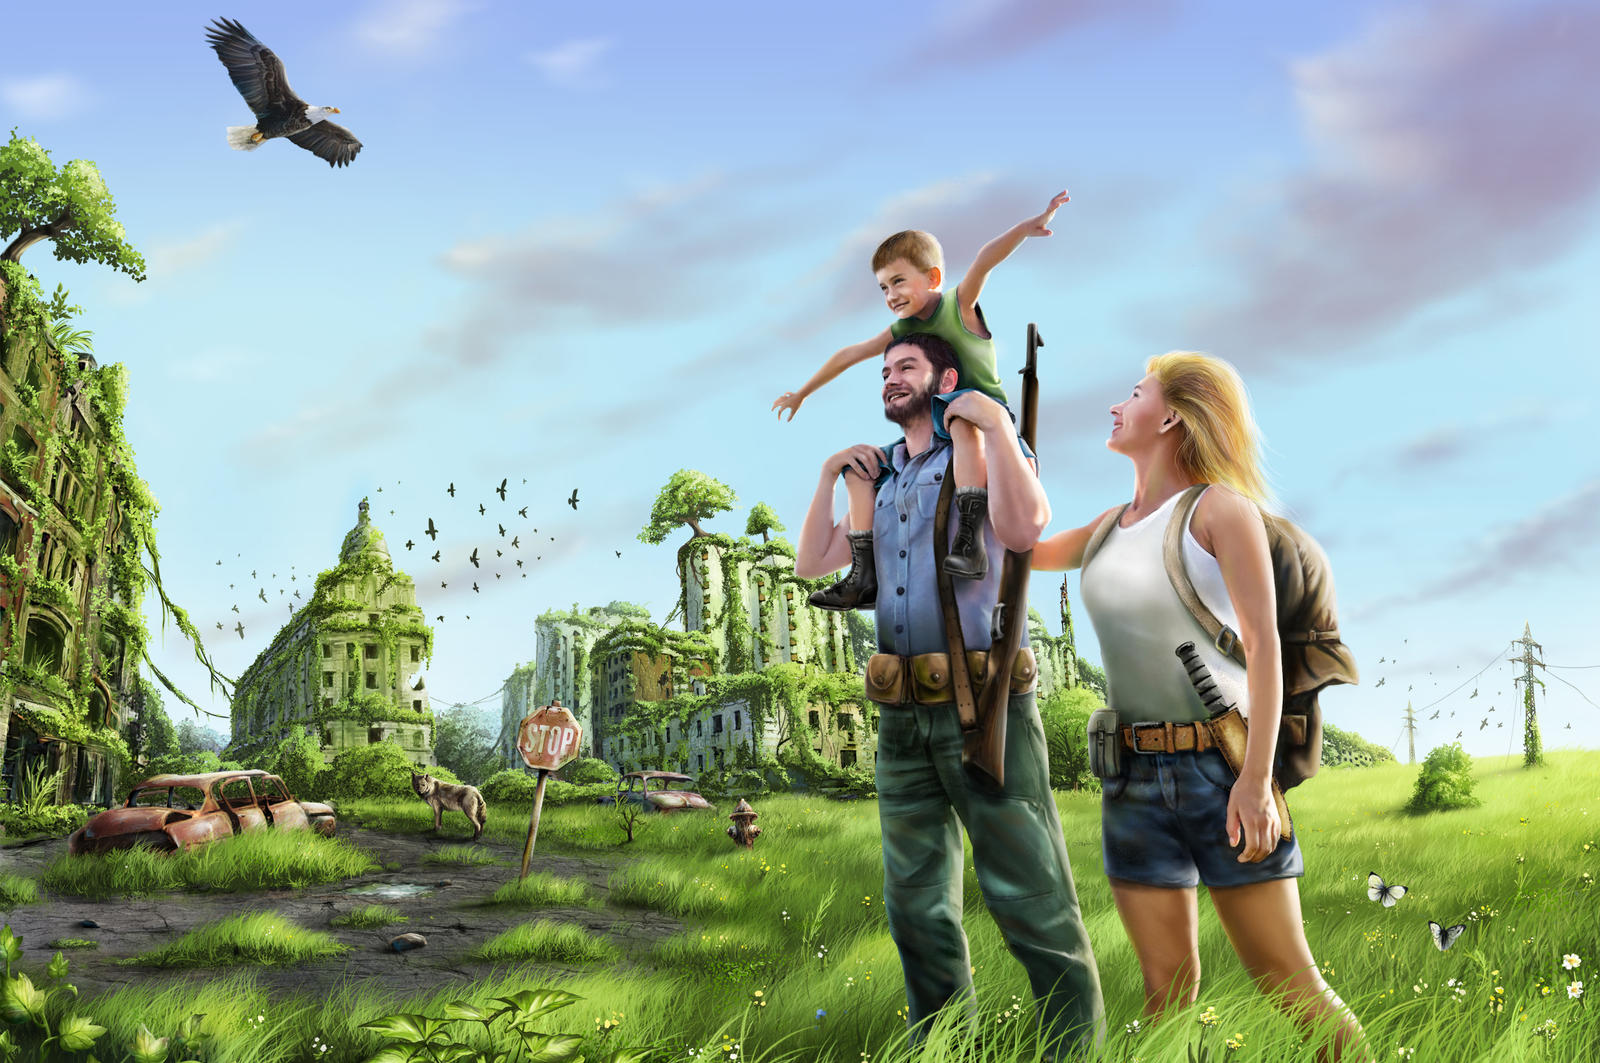 New Beginning by Pixx-73